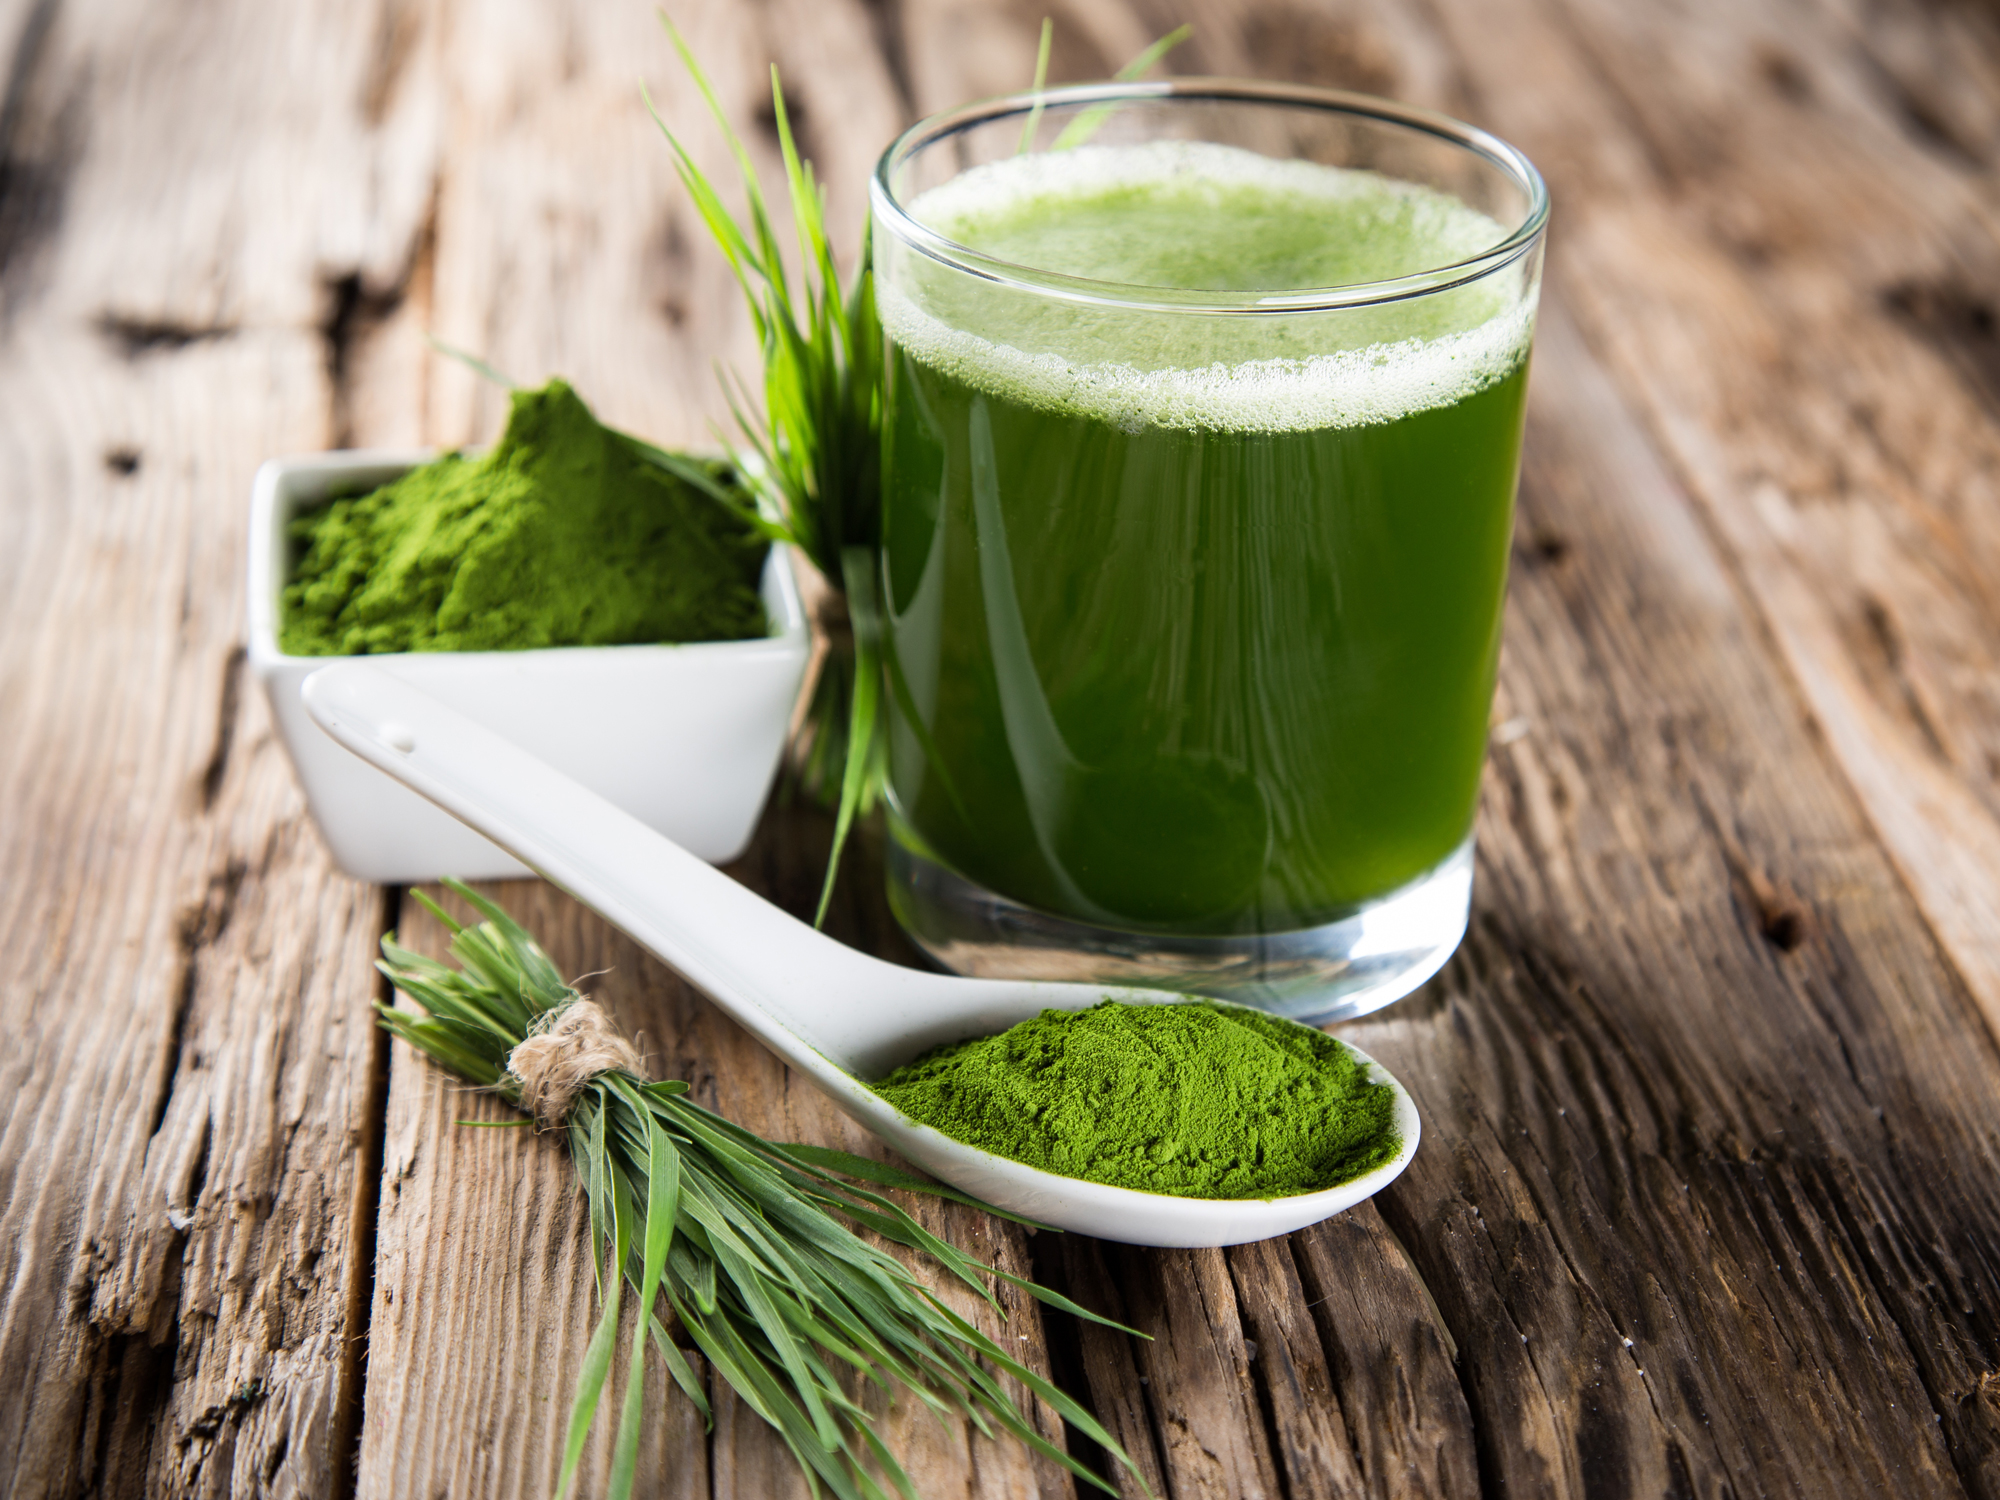 Super detox with this super green superfood